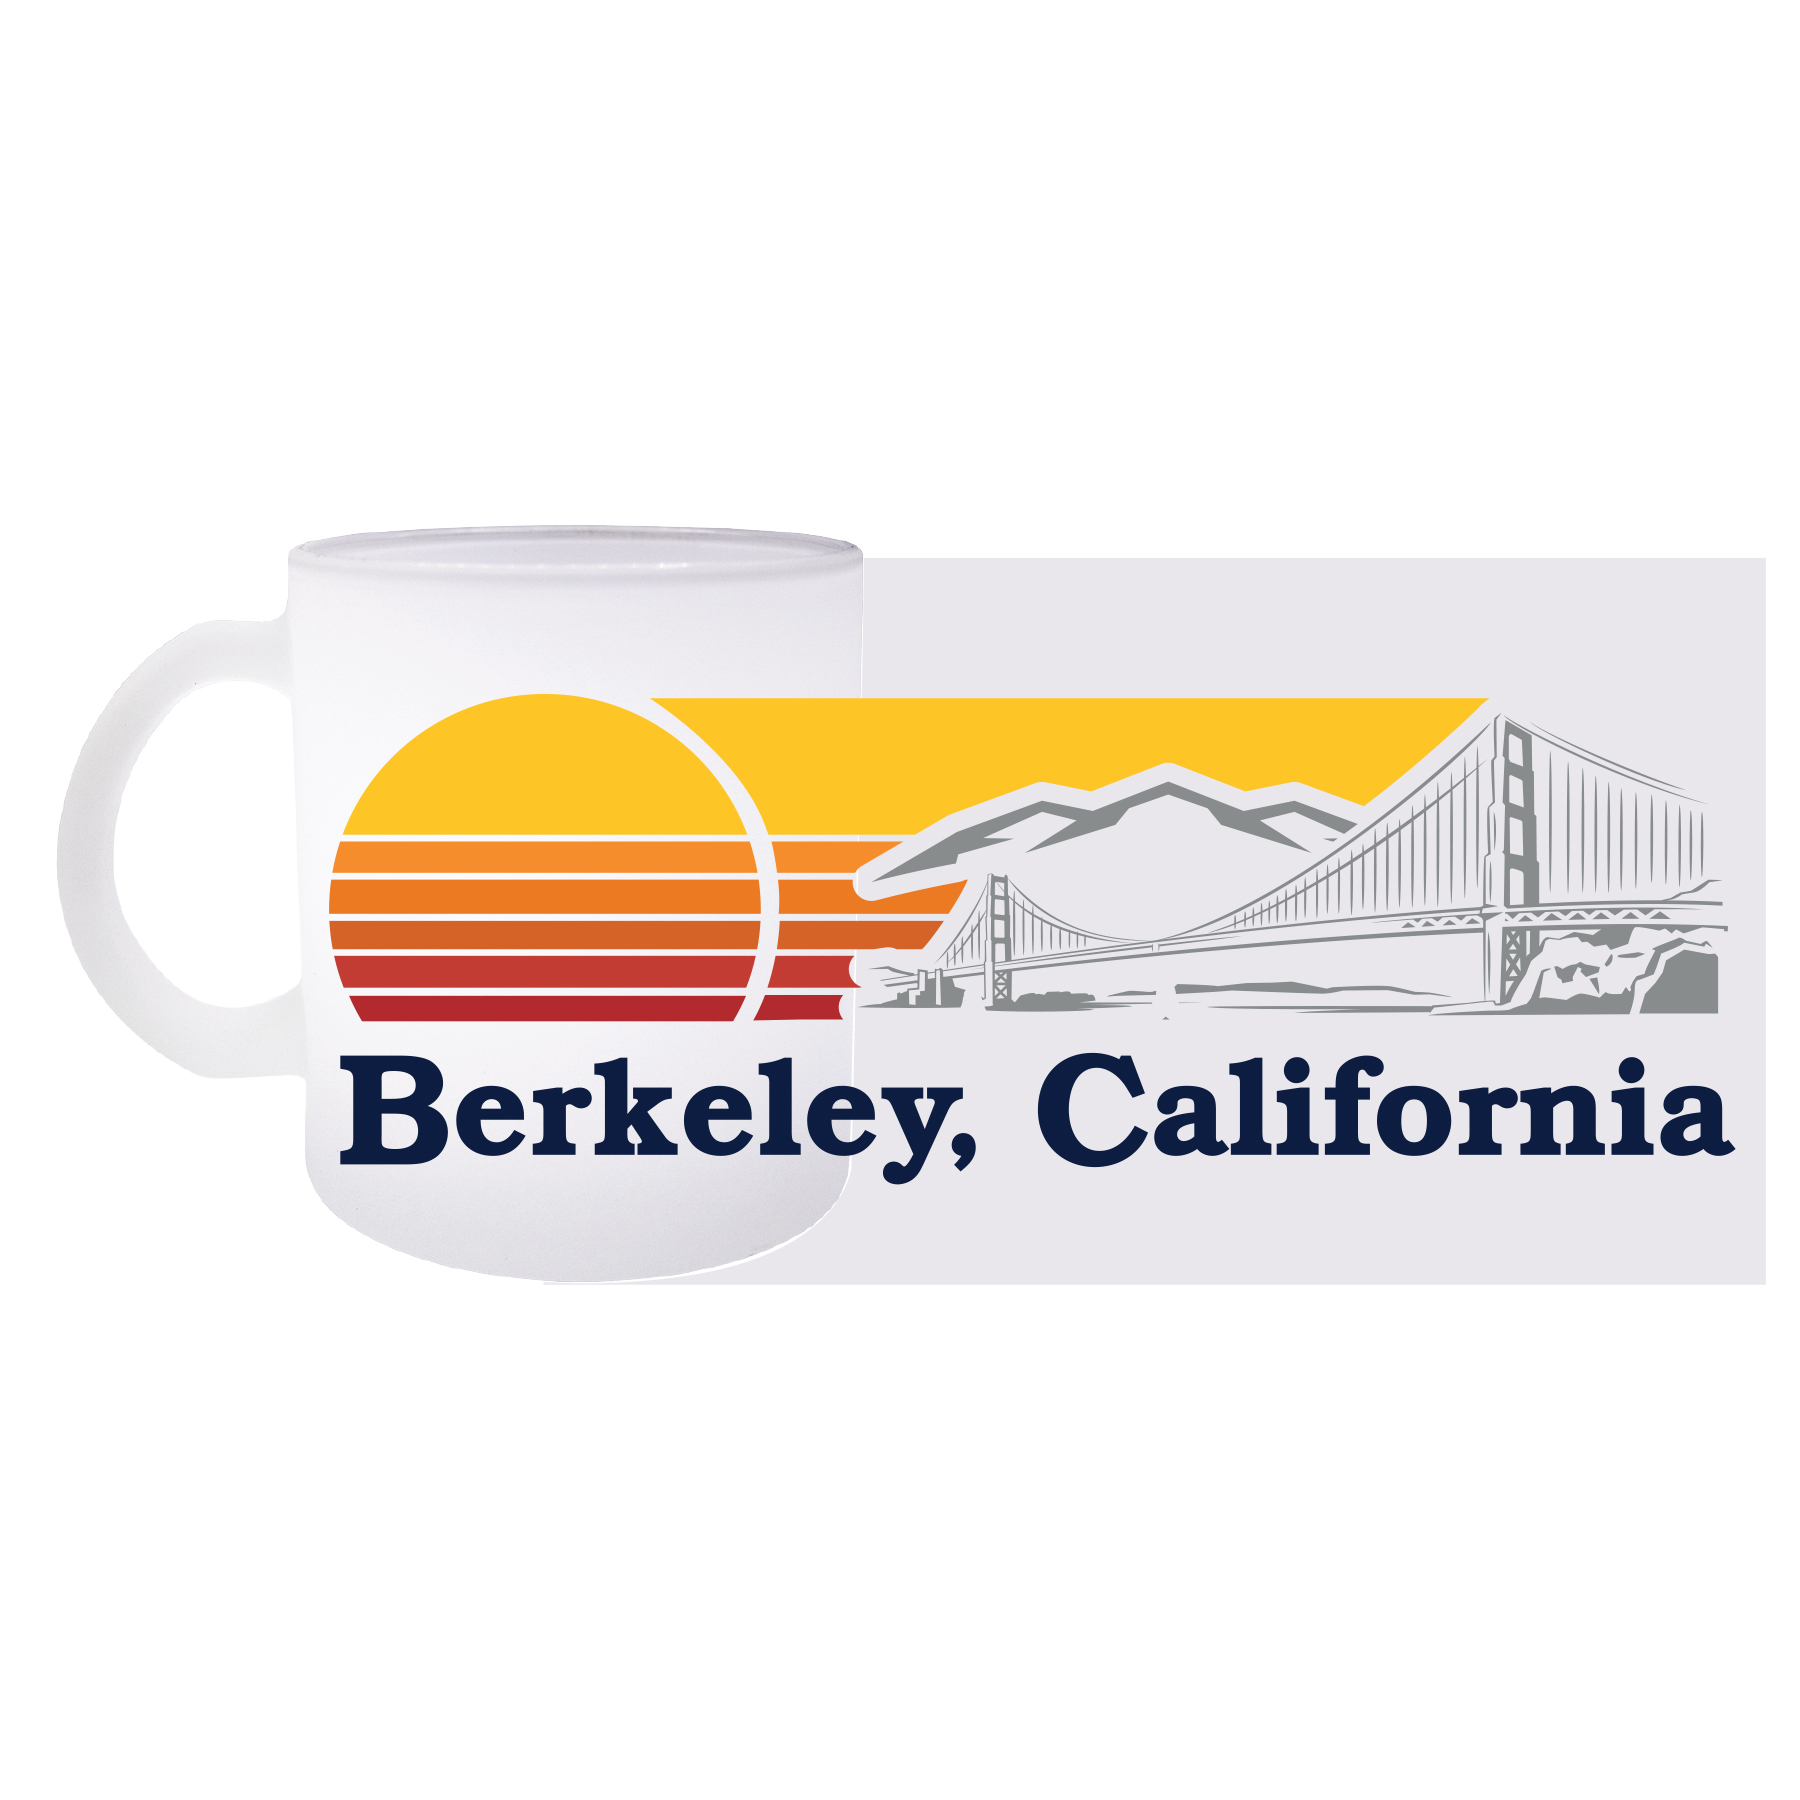 Cal Bears 15oz Frosted Glass Mug California Golden Bears Bridge